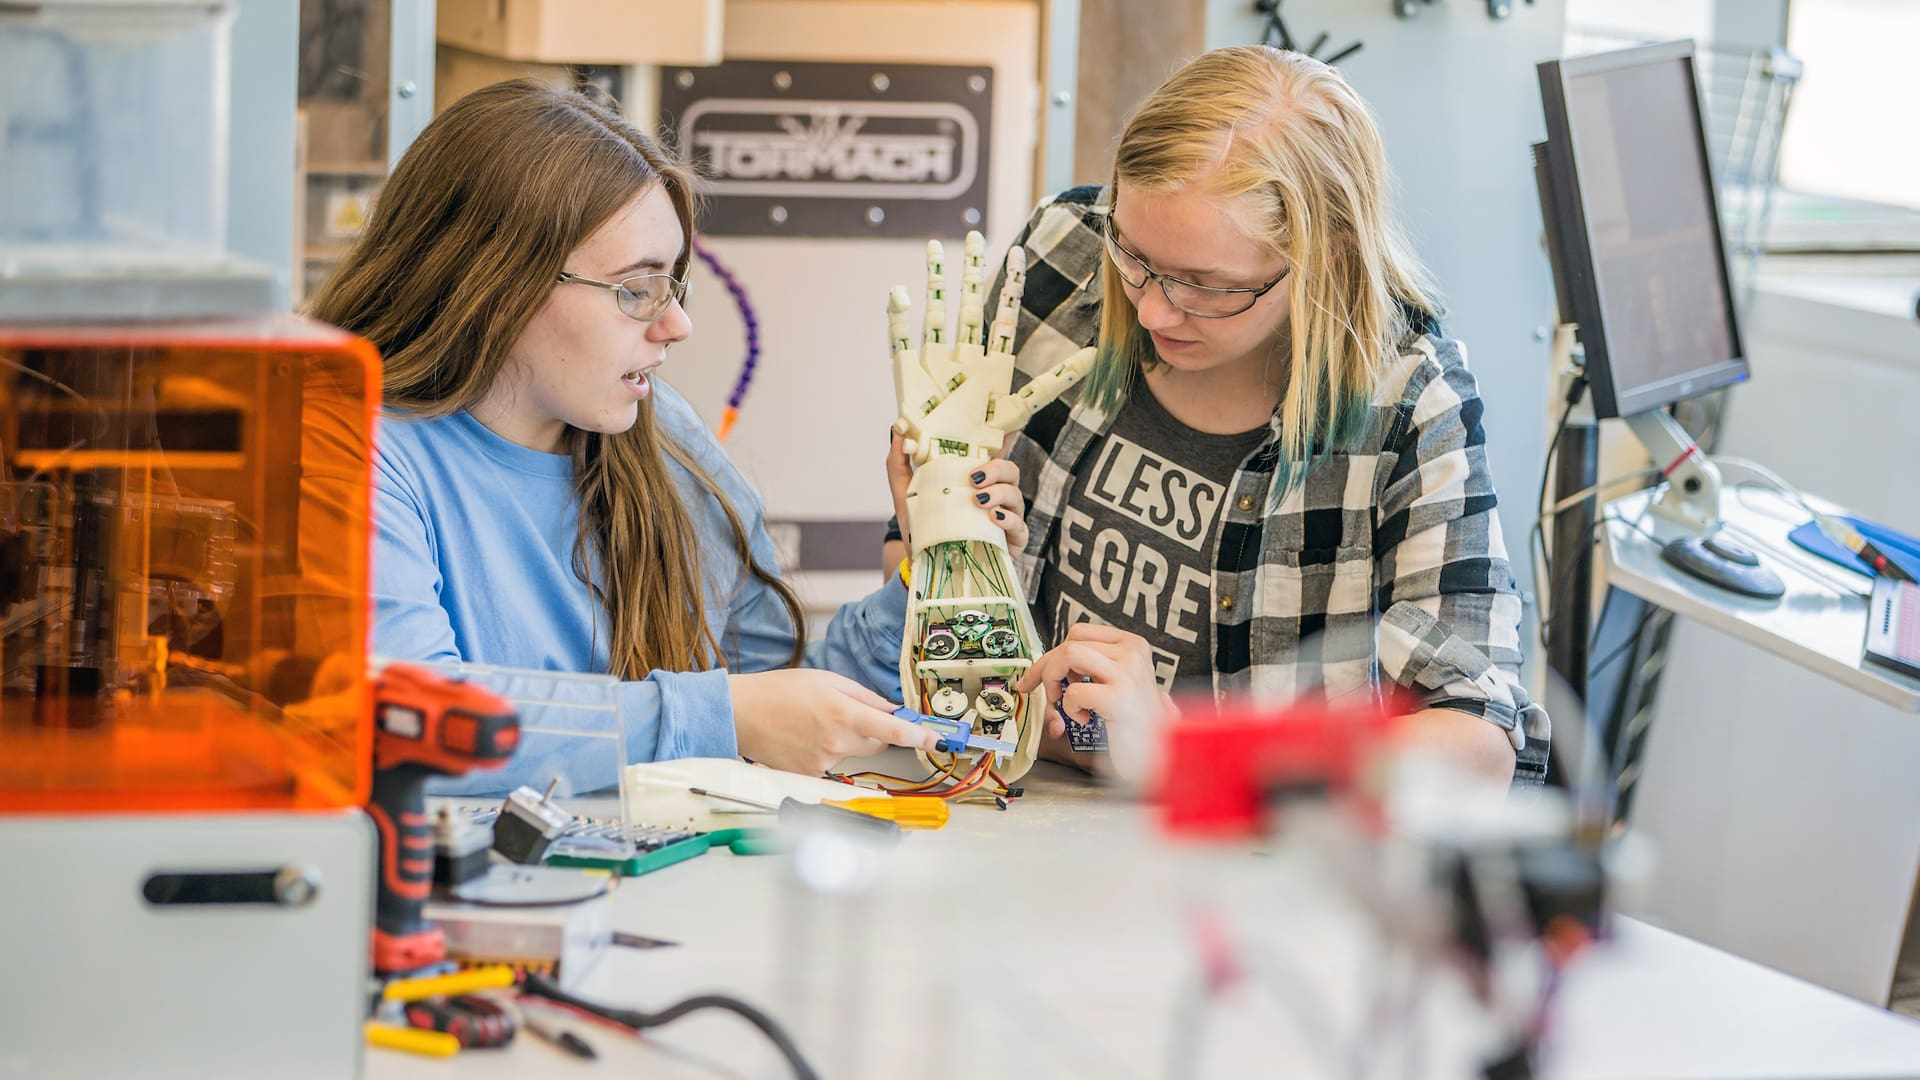 Two female students working on a biomedical engineering project.